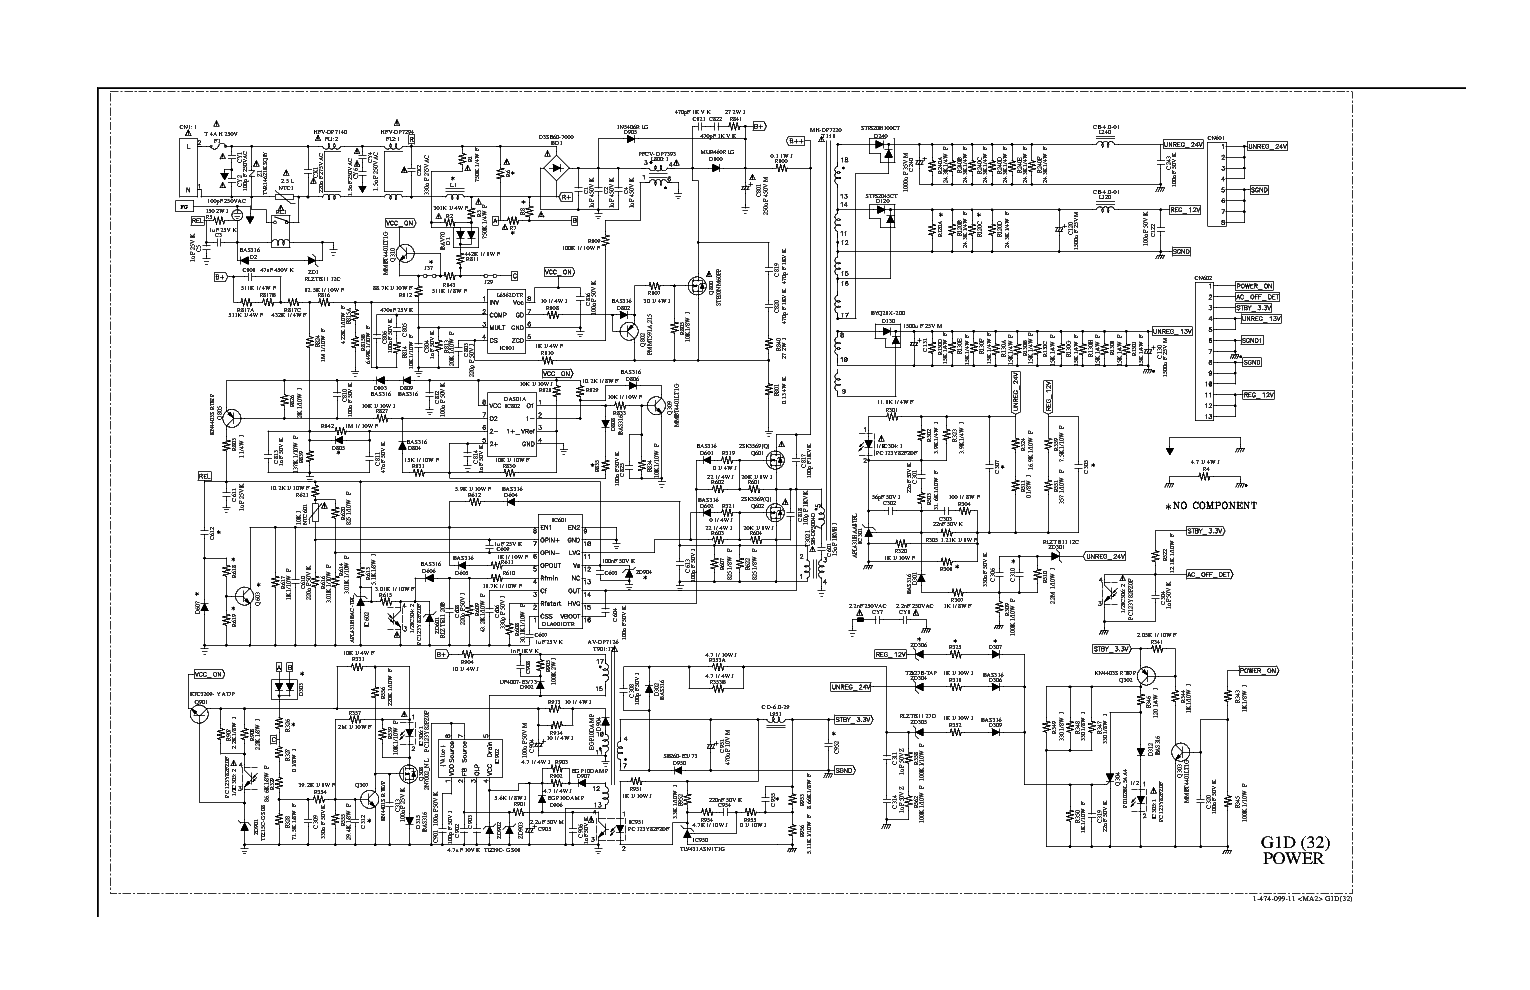 Computer Schematic Wiring Diagram Electrical Diagrams Pc 350w Power Supply Library Of U2022 Symbols